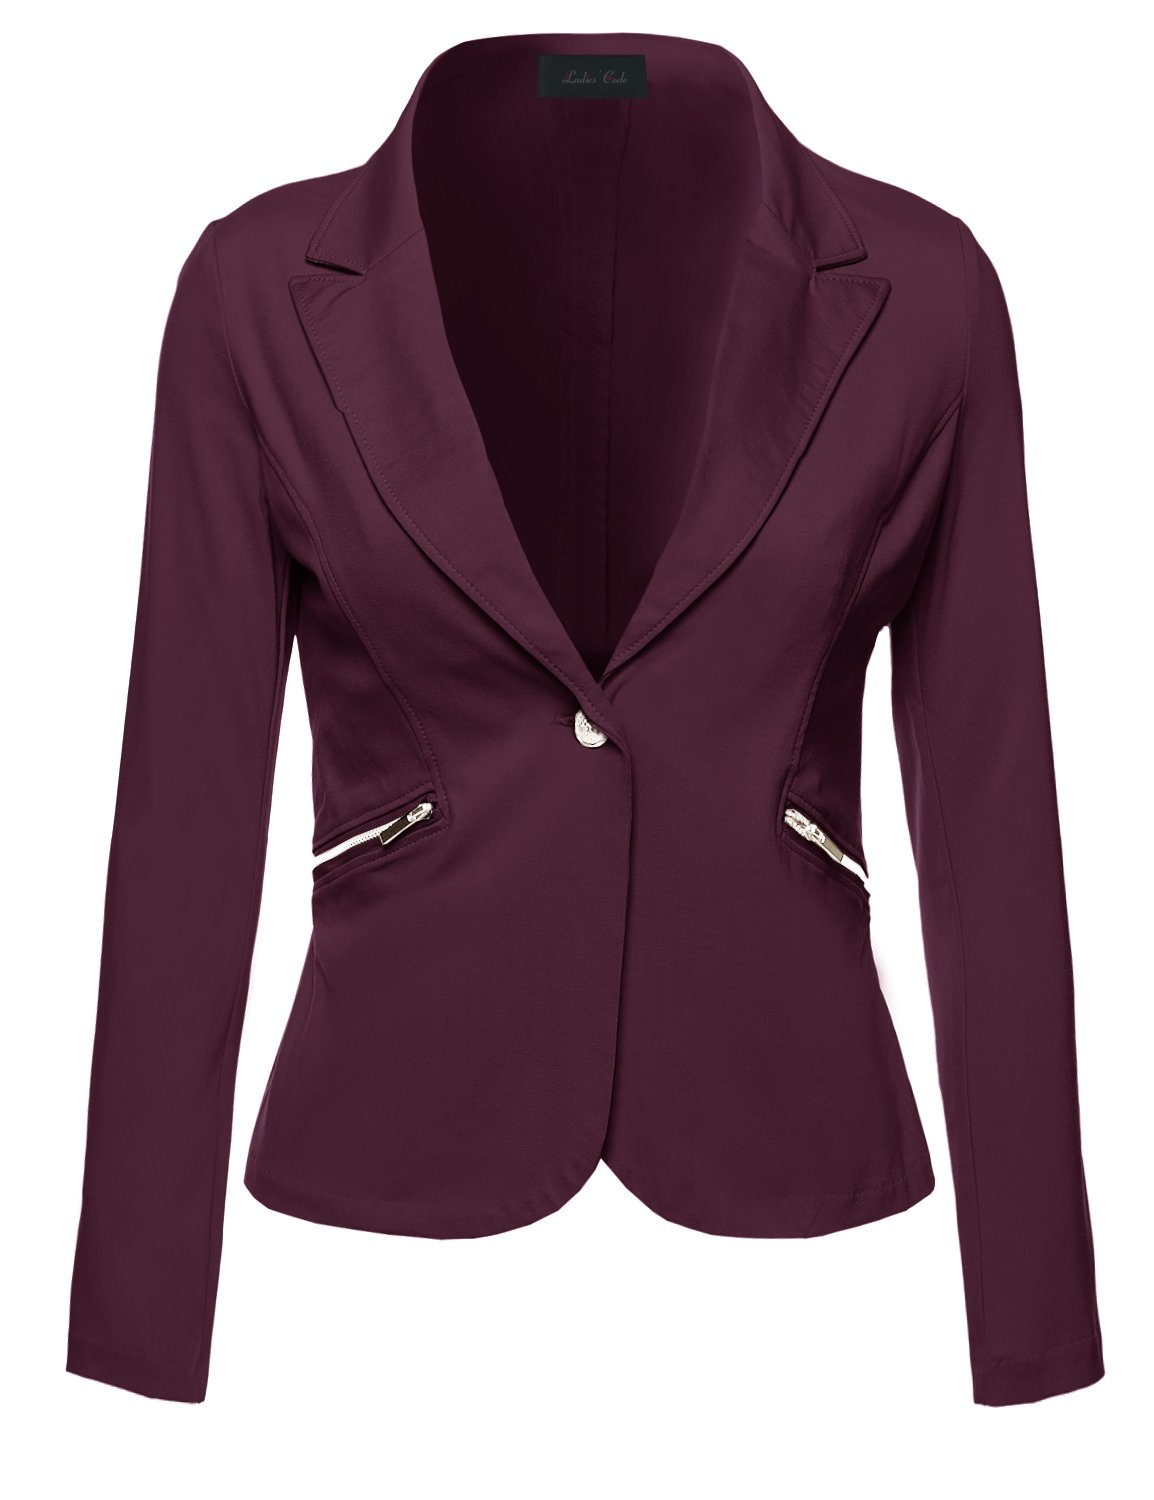 Ladies' Code Business Office Wear Long Sleeve One Button Fly Blazer Burgundy L Size by Ladies' Code